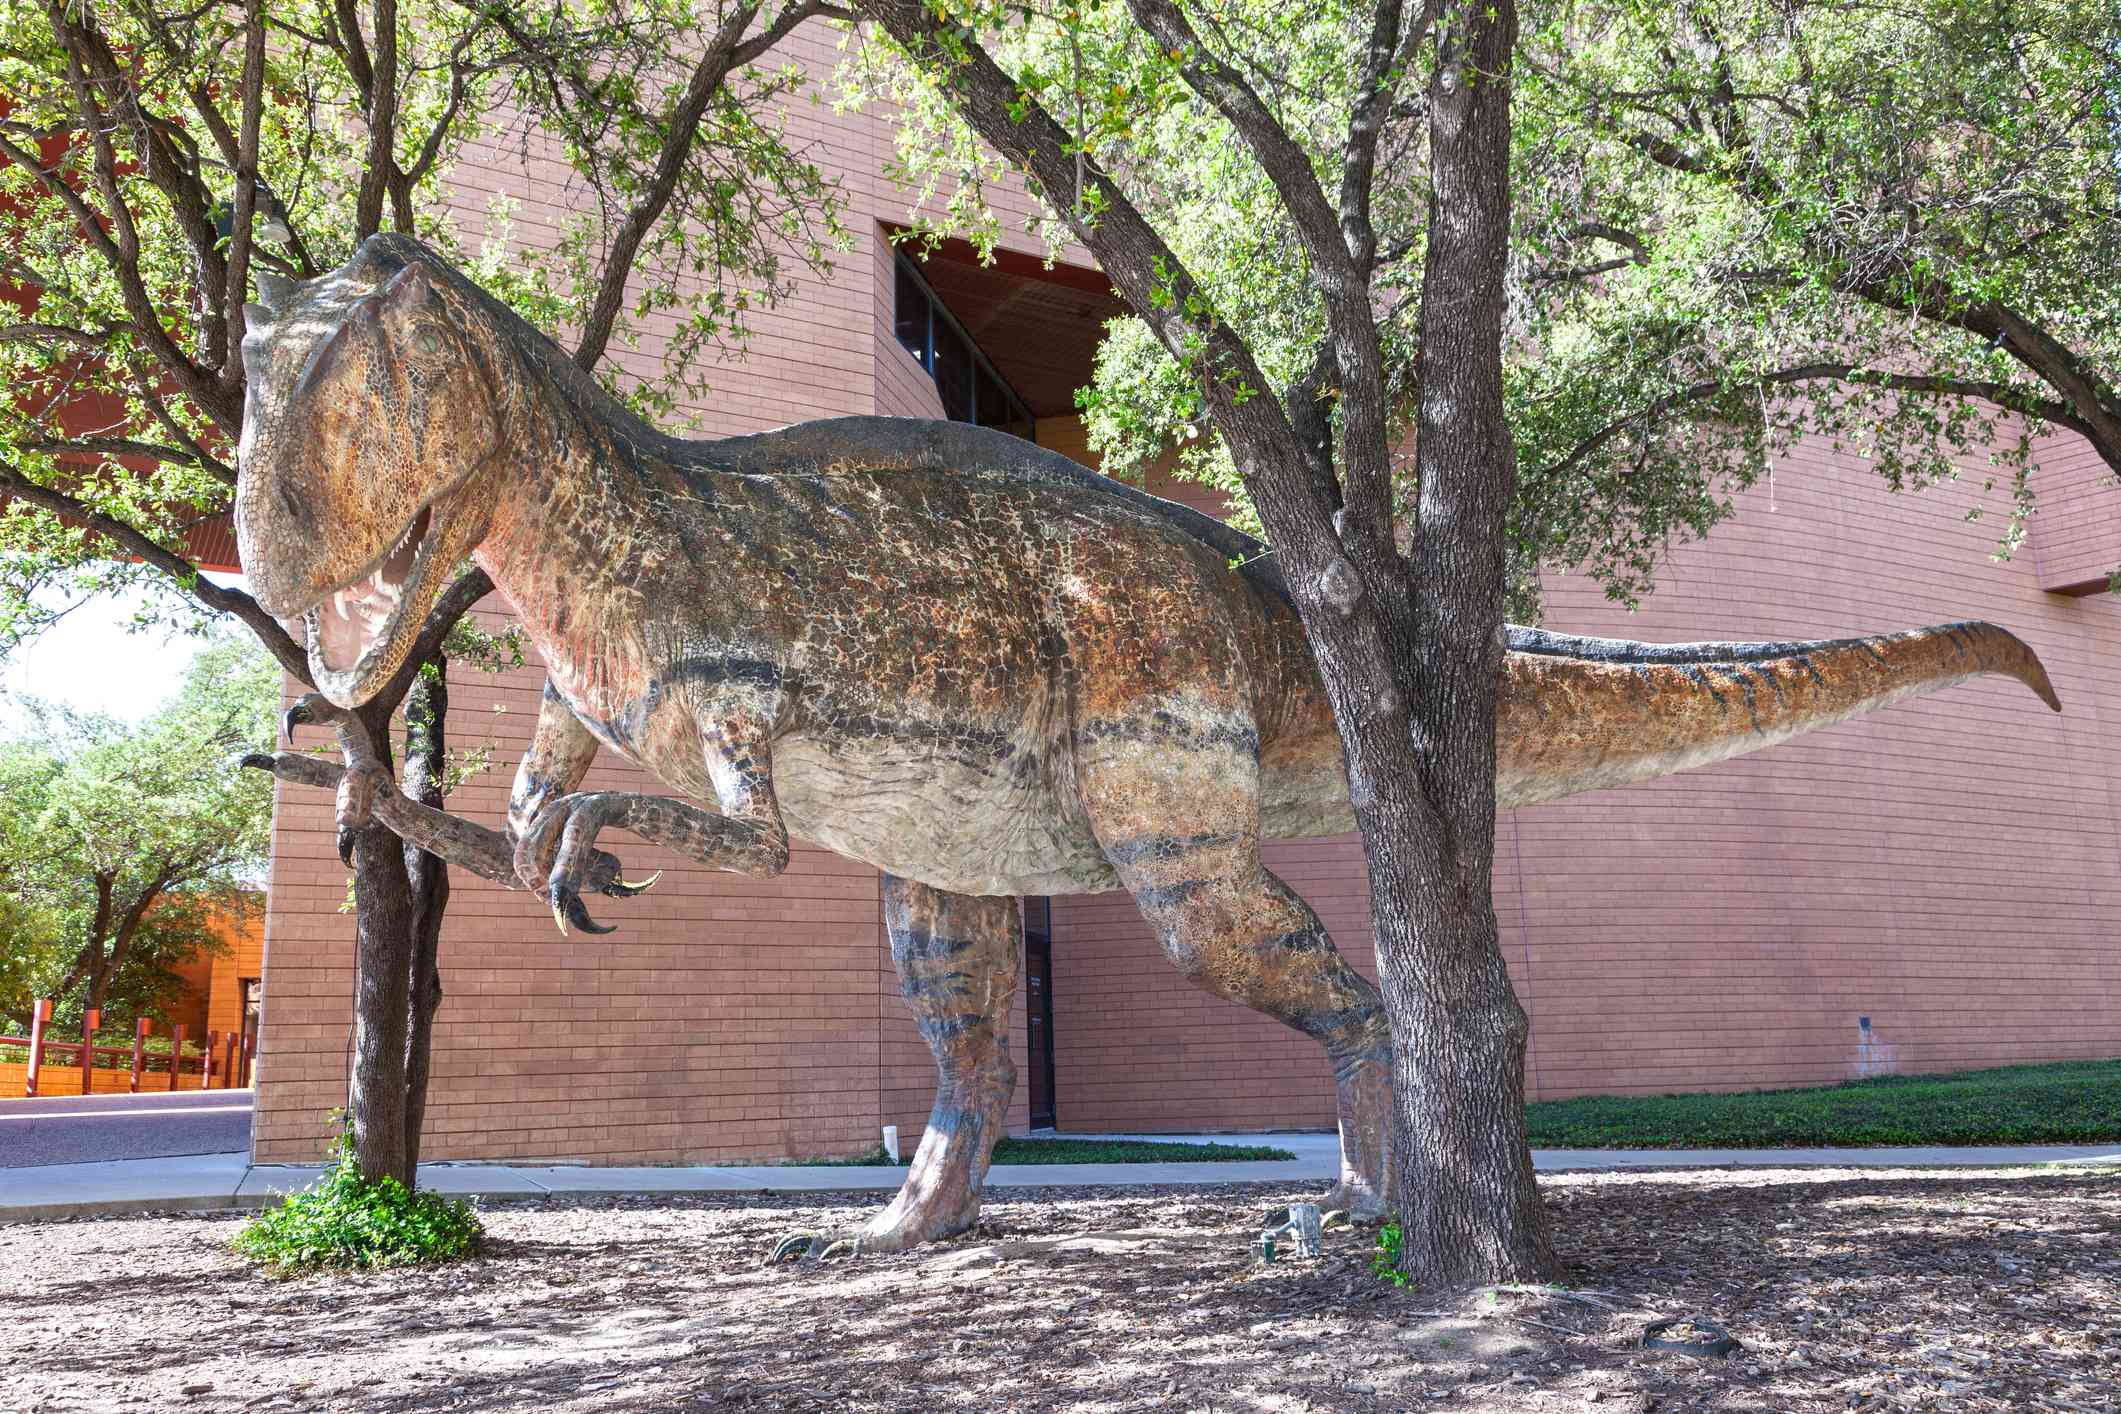 Dinosaur at the Science and History Museum of Fort Worth